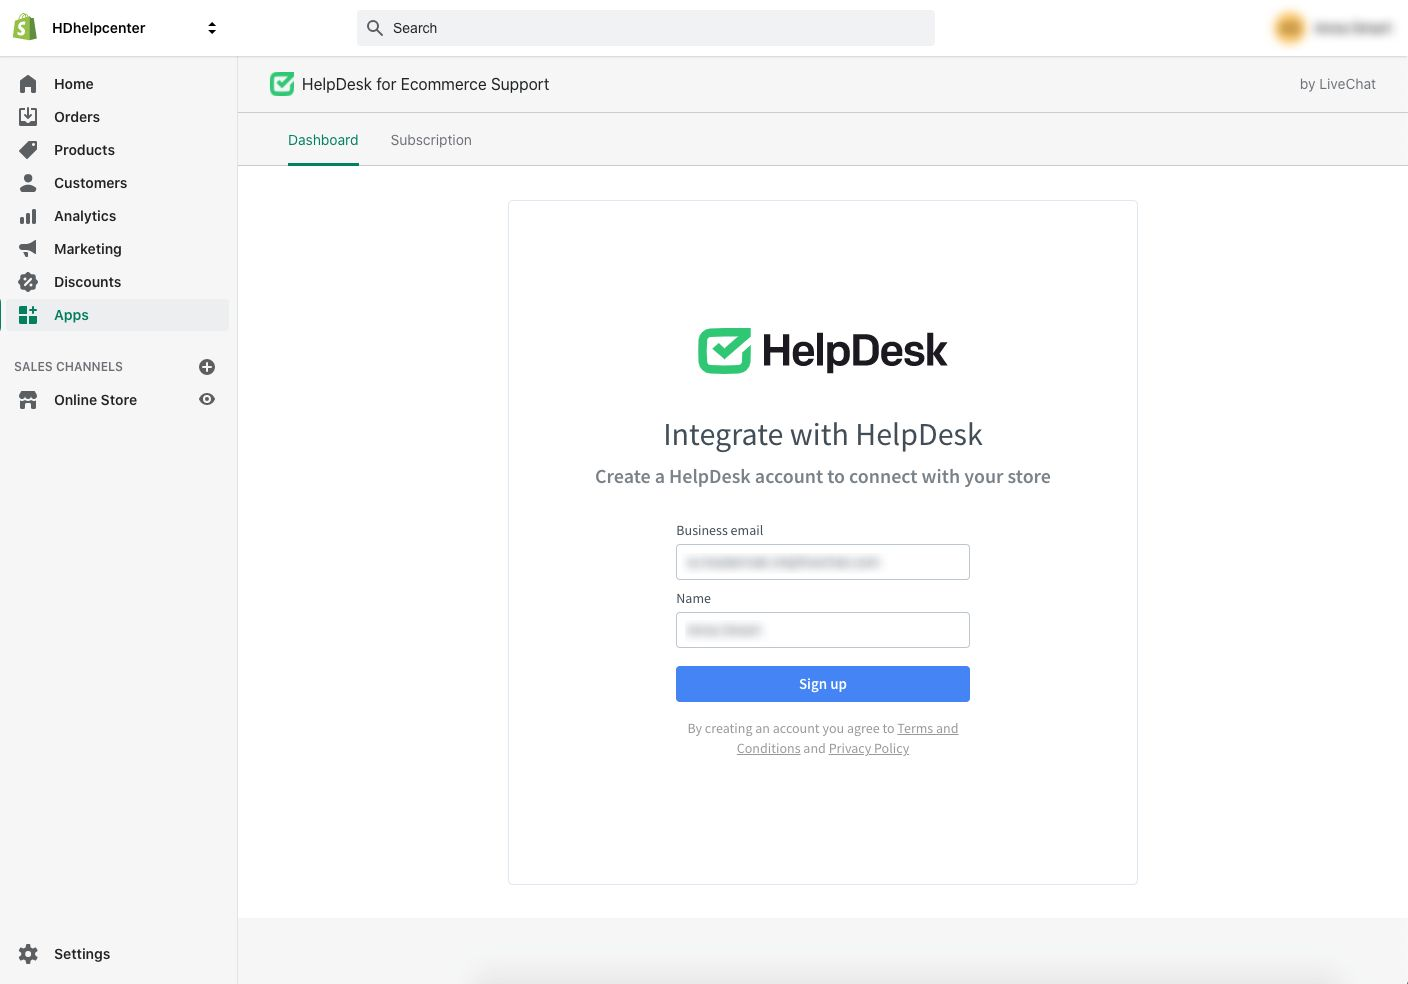 Creating a HelpDesk account to connect to the Shopify store.